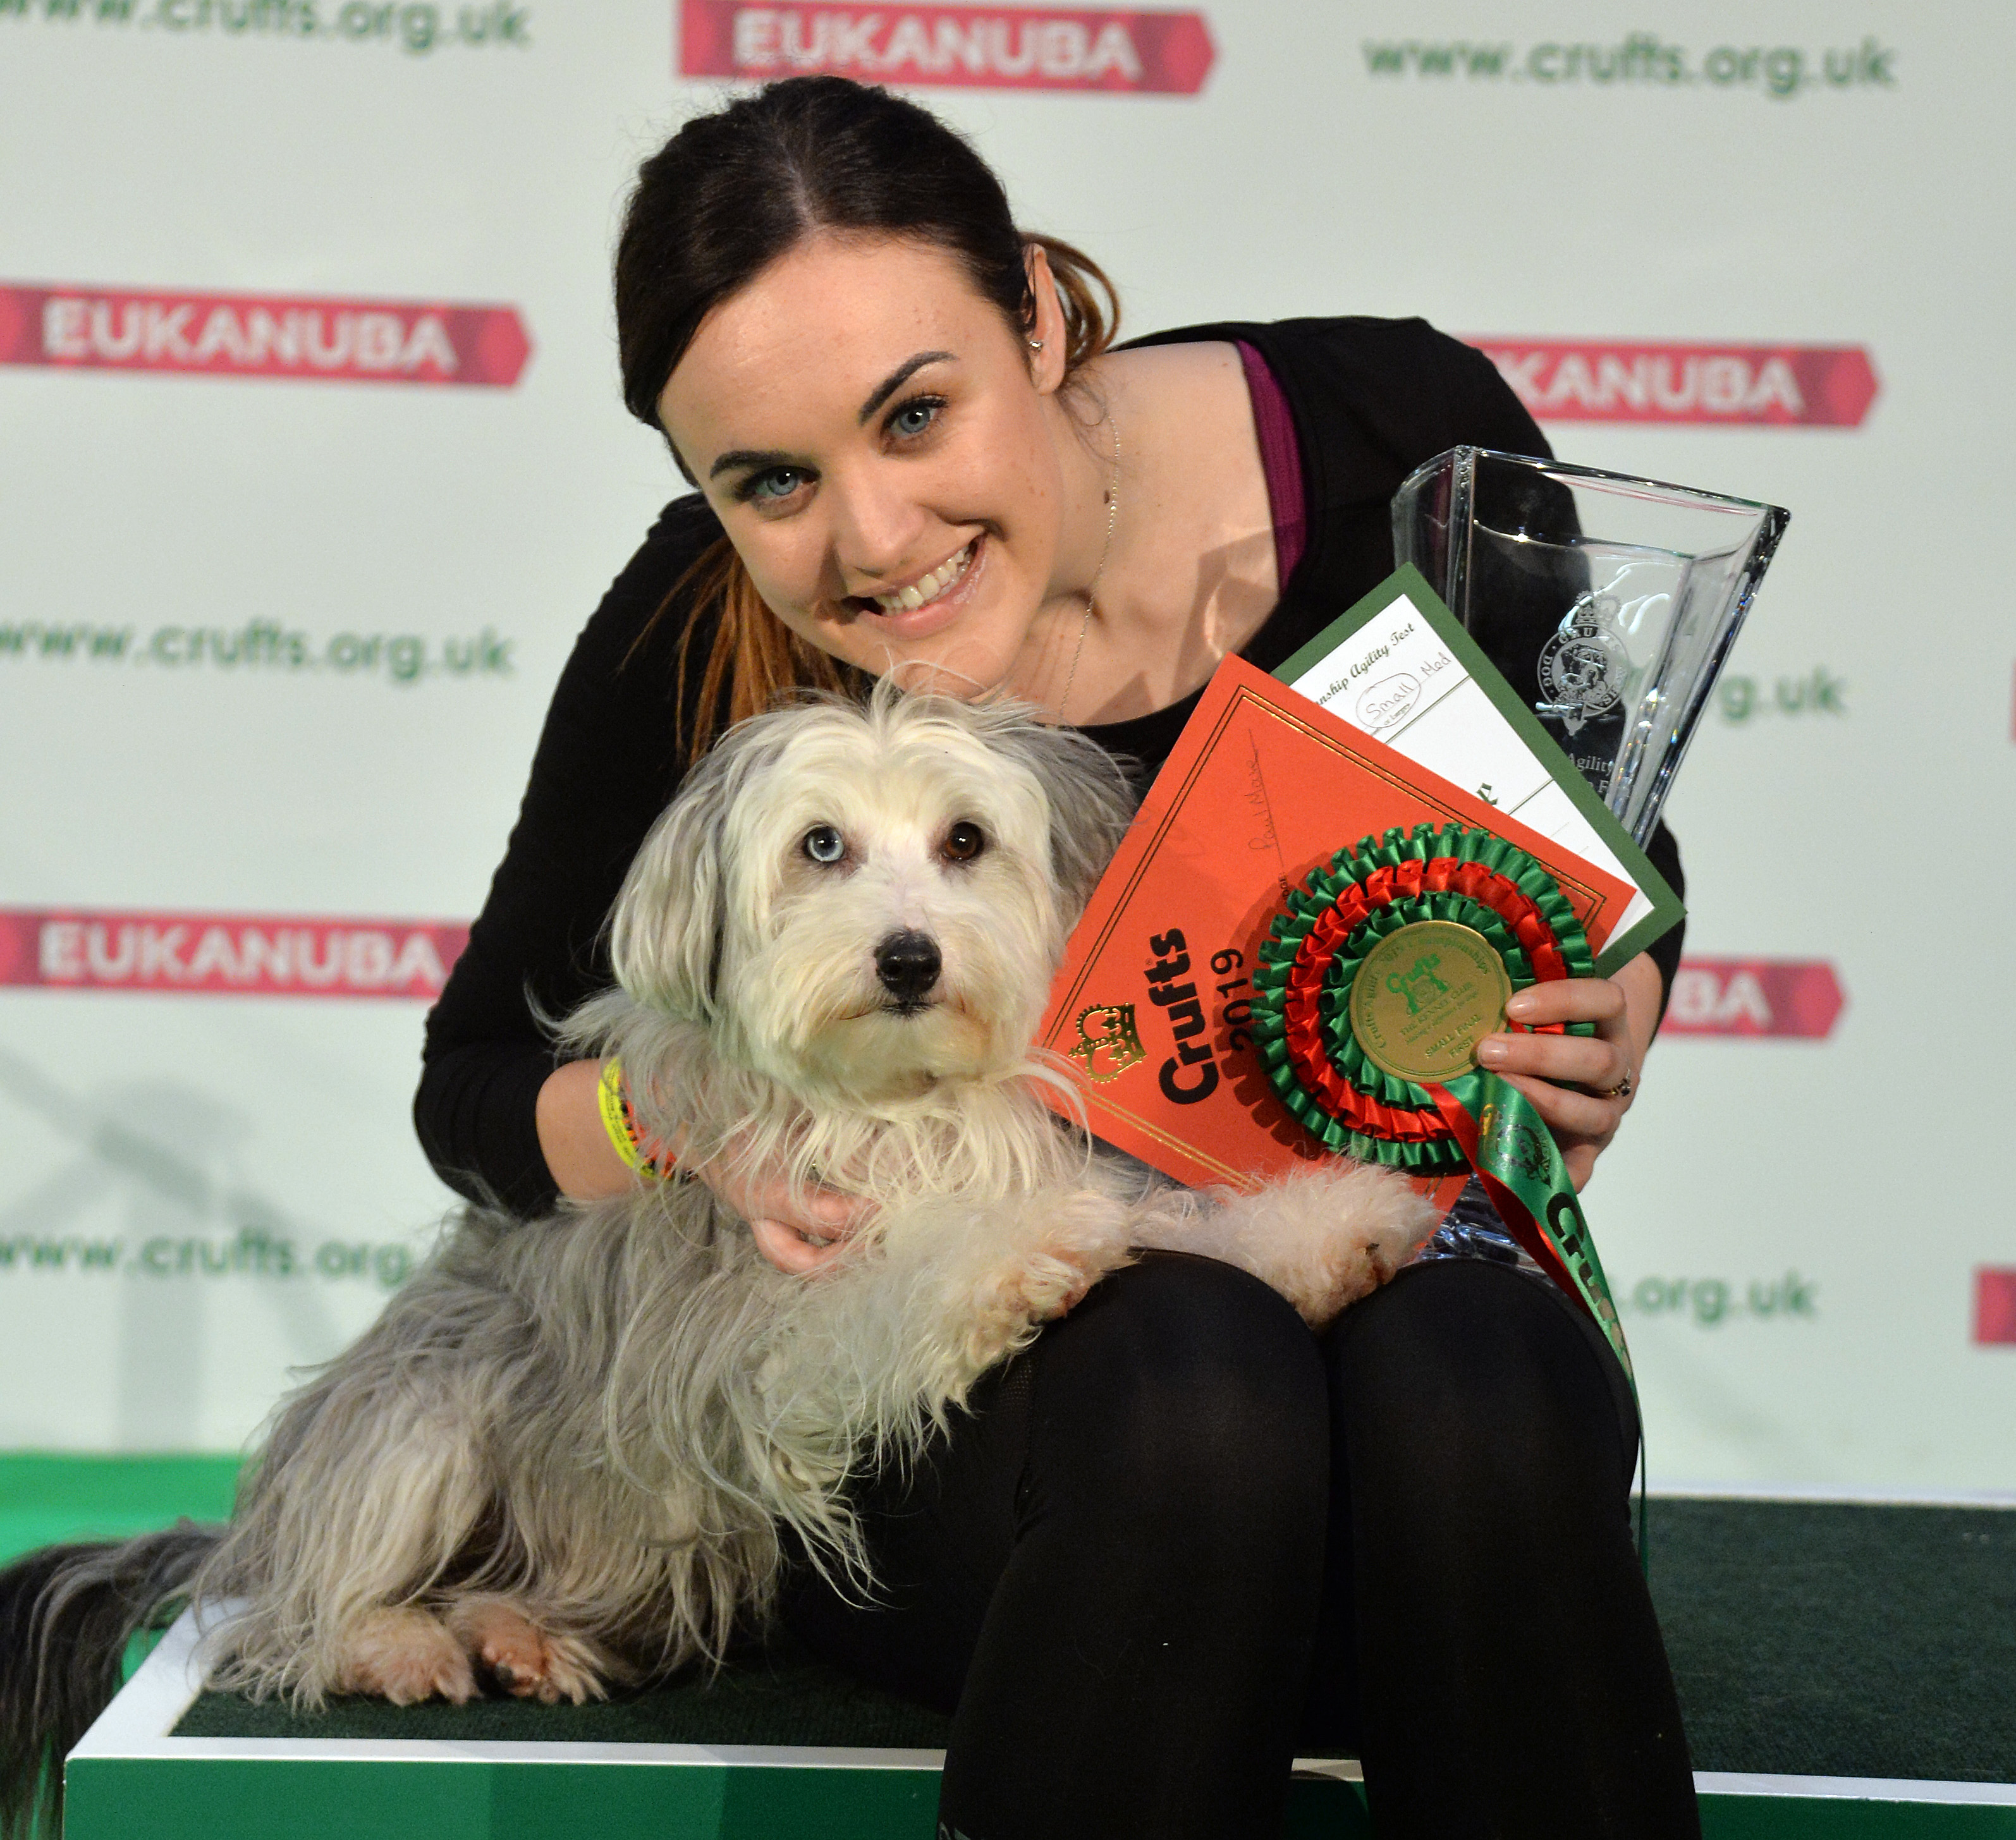 Britain's Got Talent star Ashleigh Butler sobs over Crufts 2019 win with new dog Sully